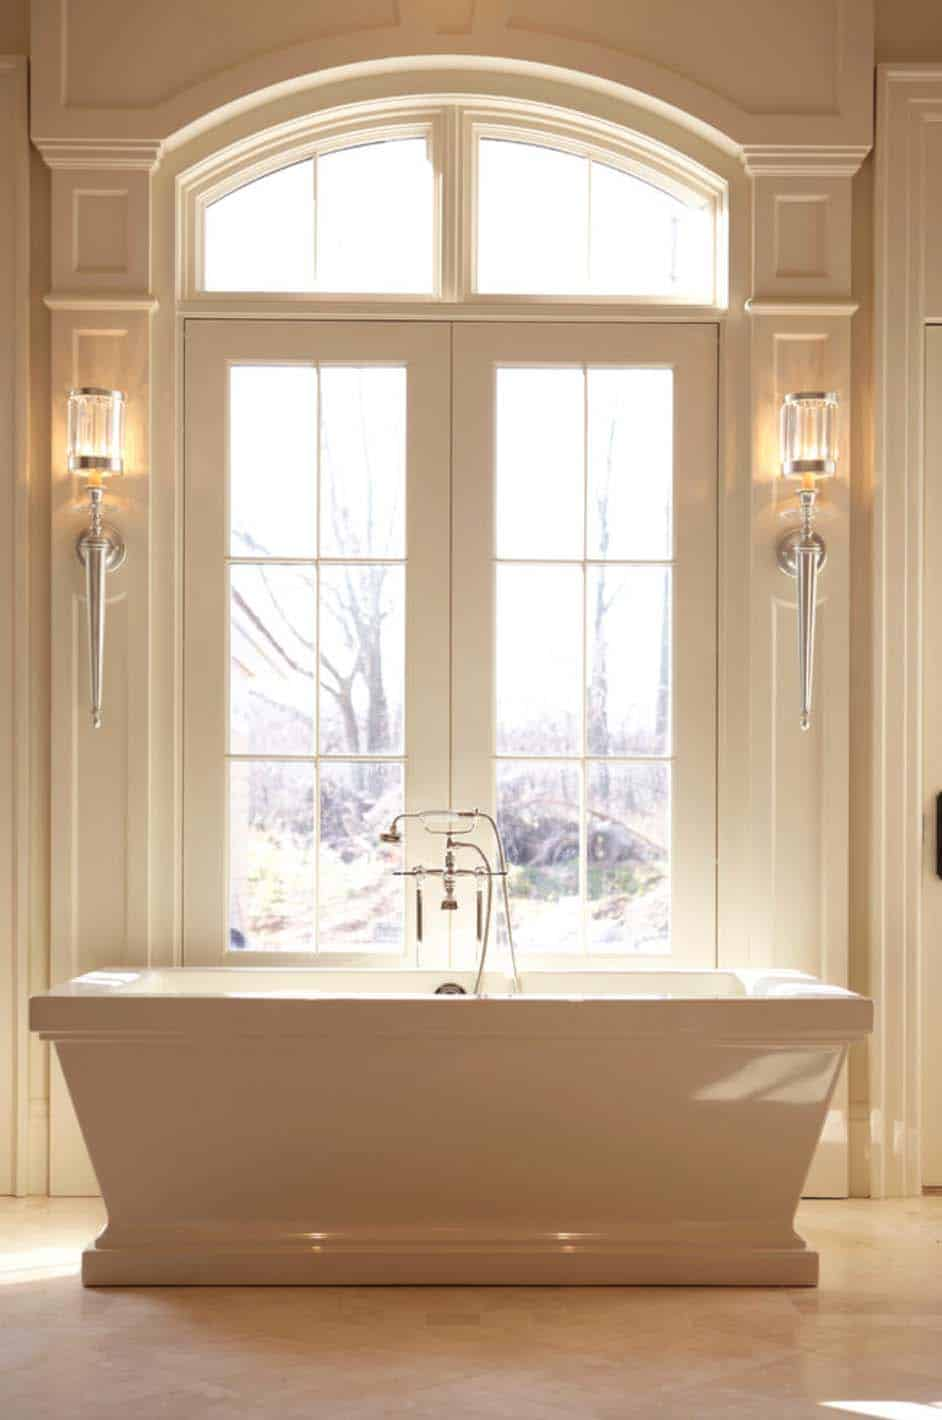 Freestanding-Tubs-Bathroom-Ideas-33-1 Kindesign